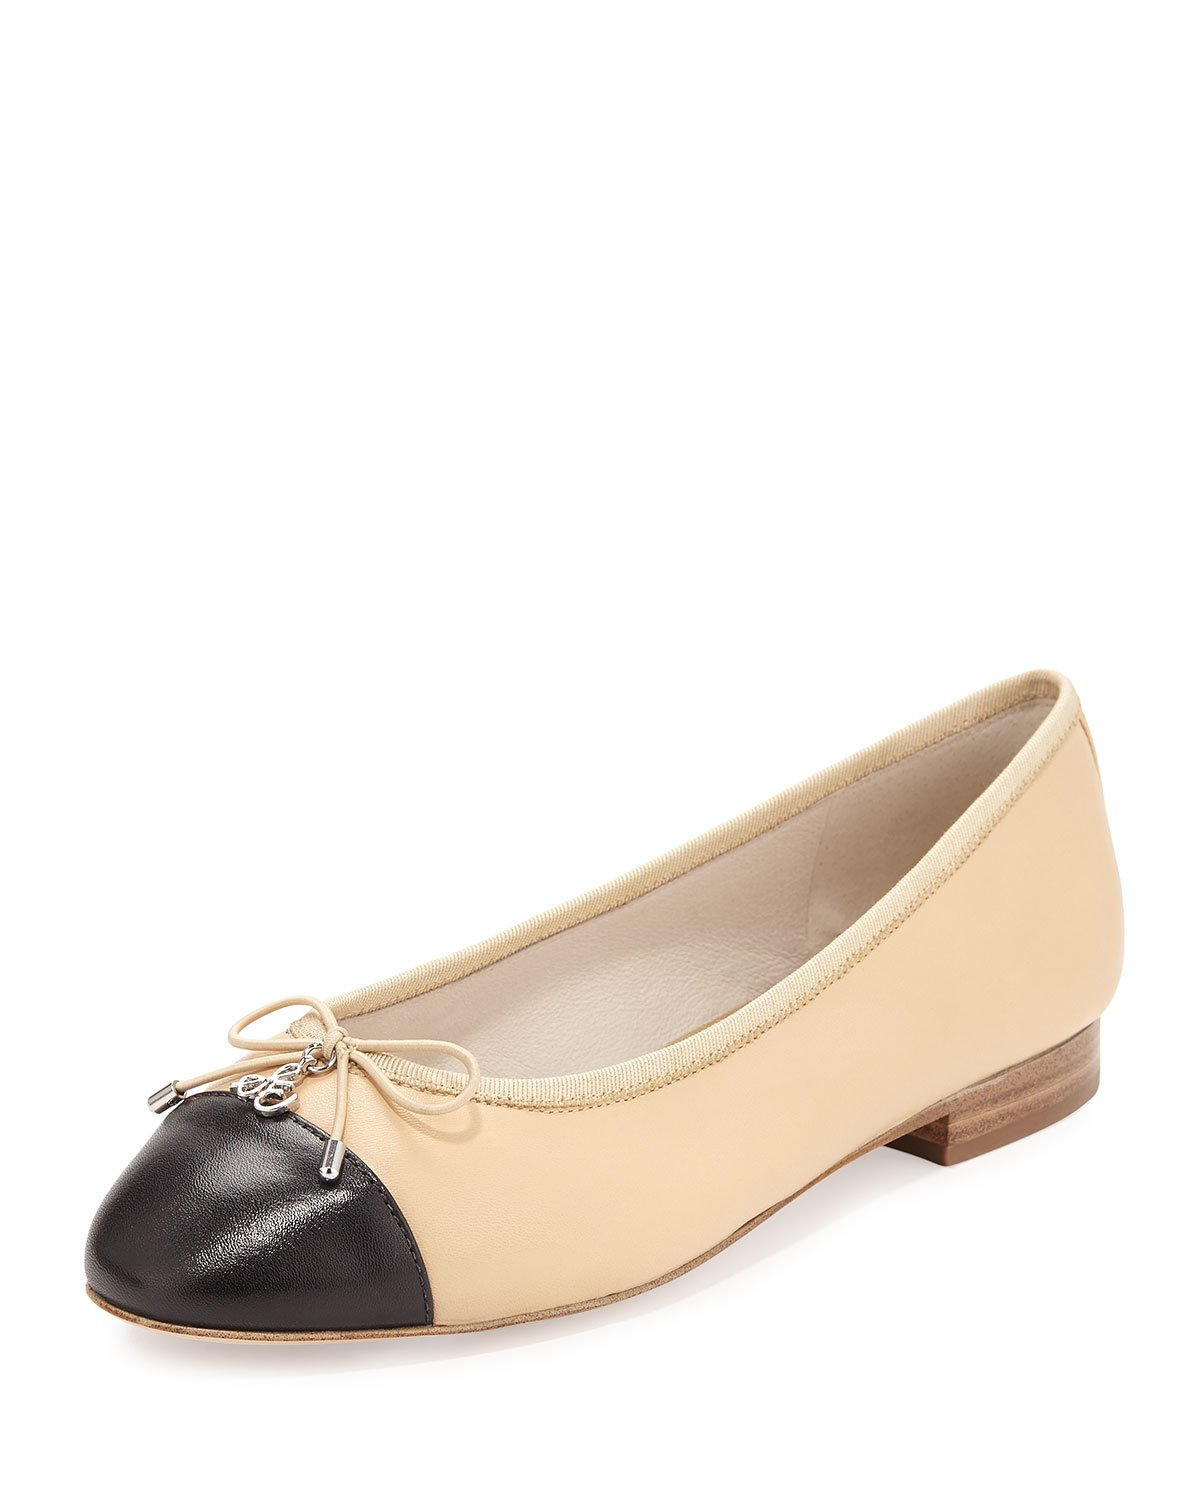 Lyst Sam Edelman Sara Cap Toe Leather Ballet Flats In